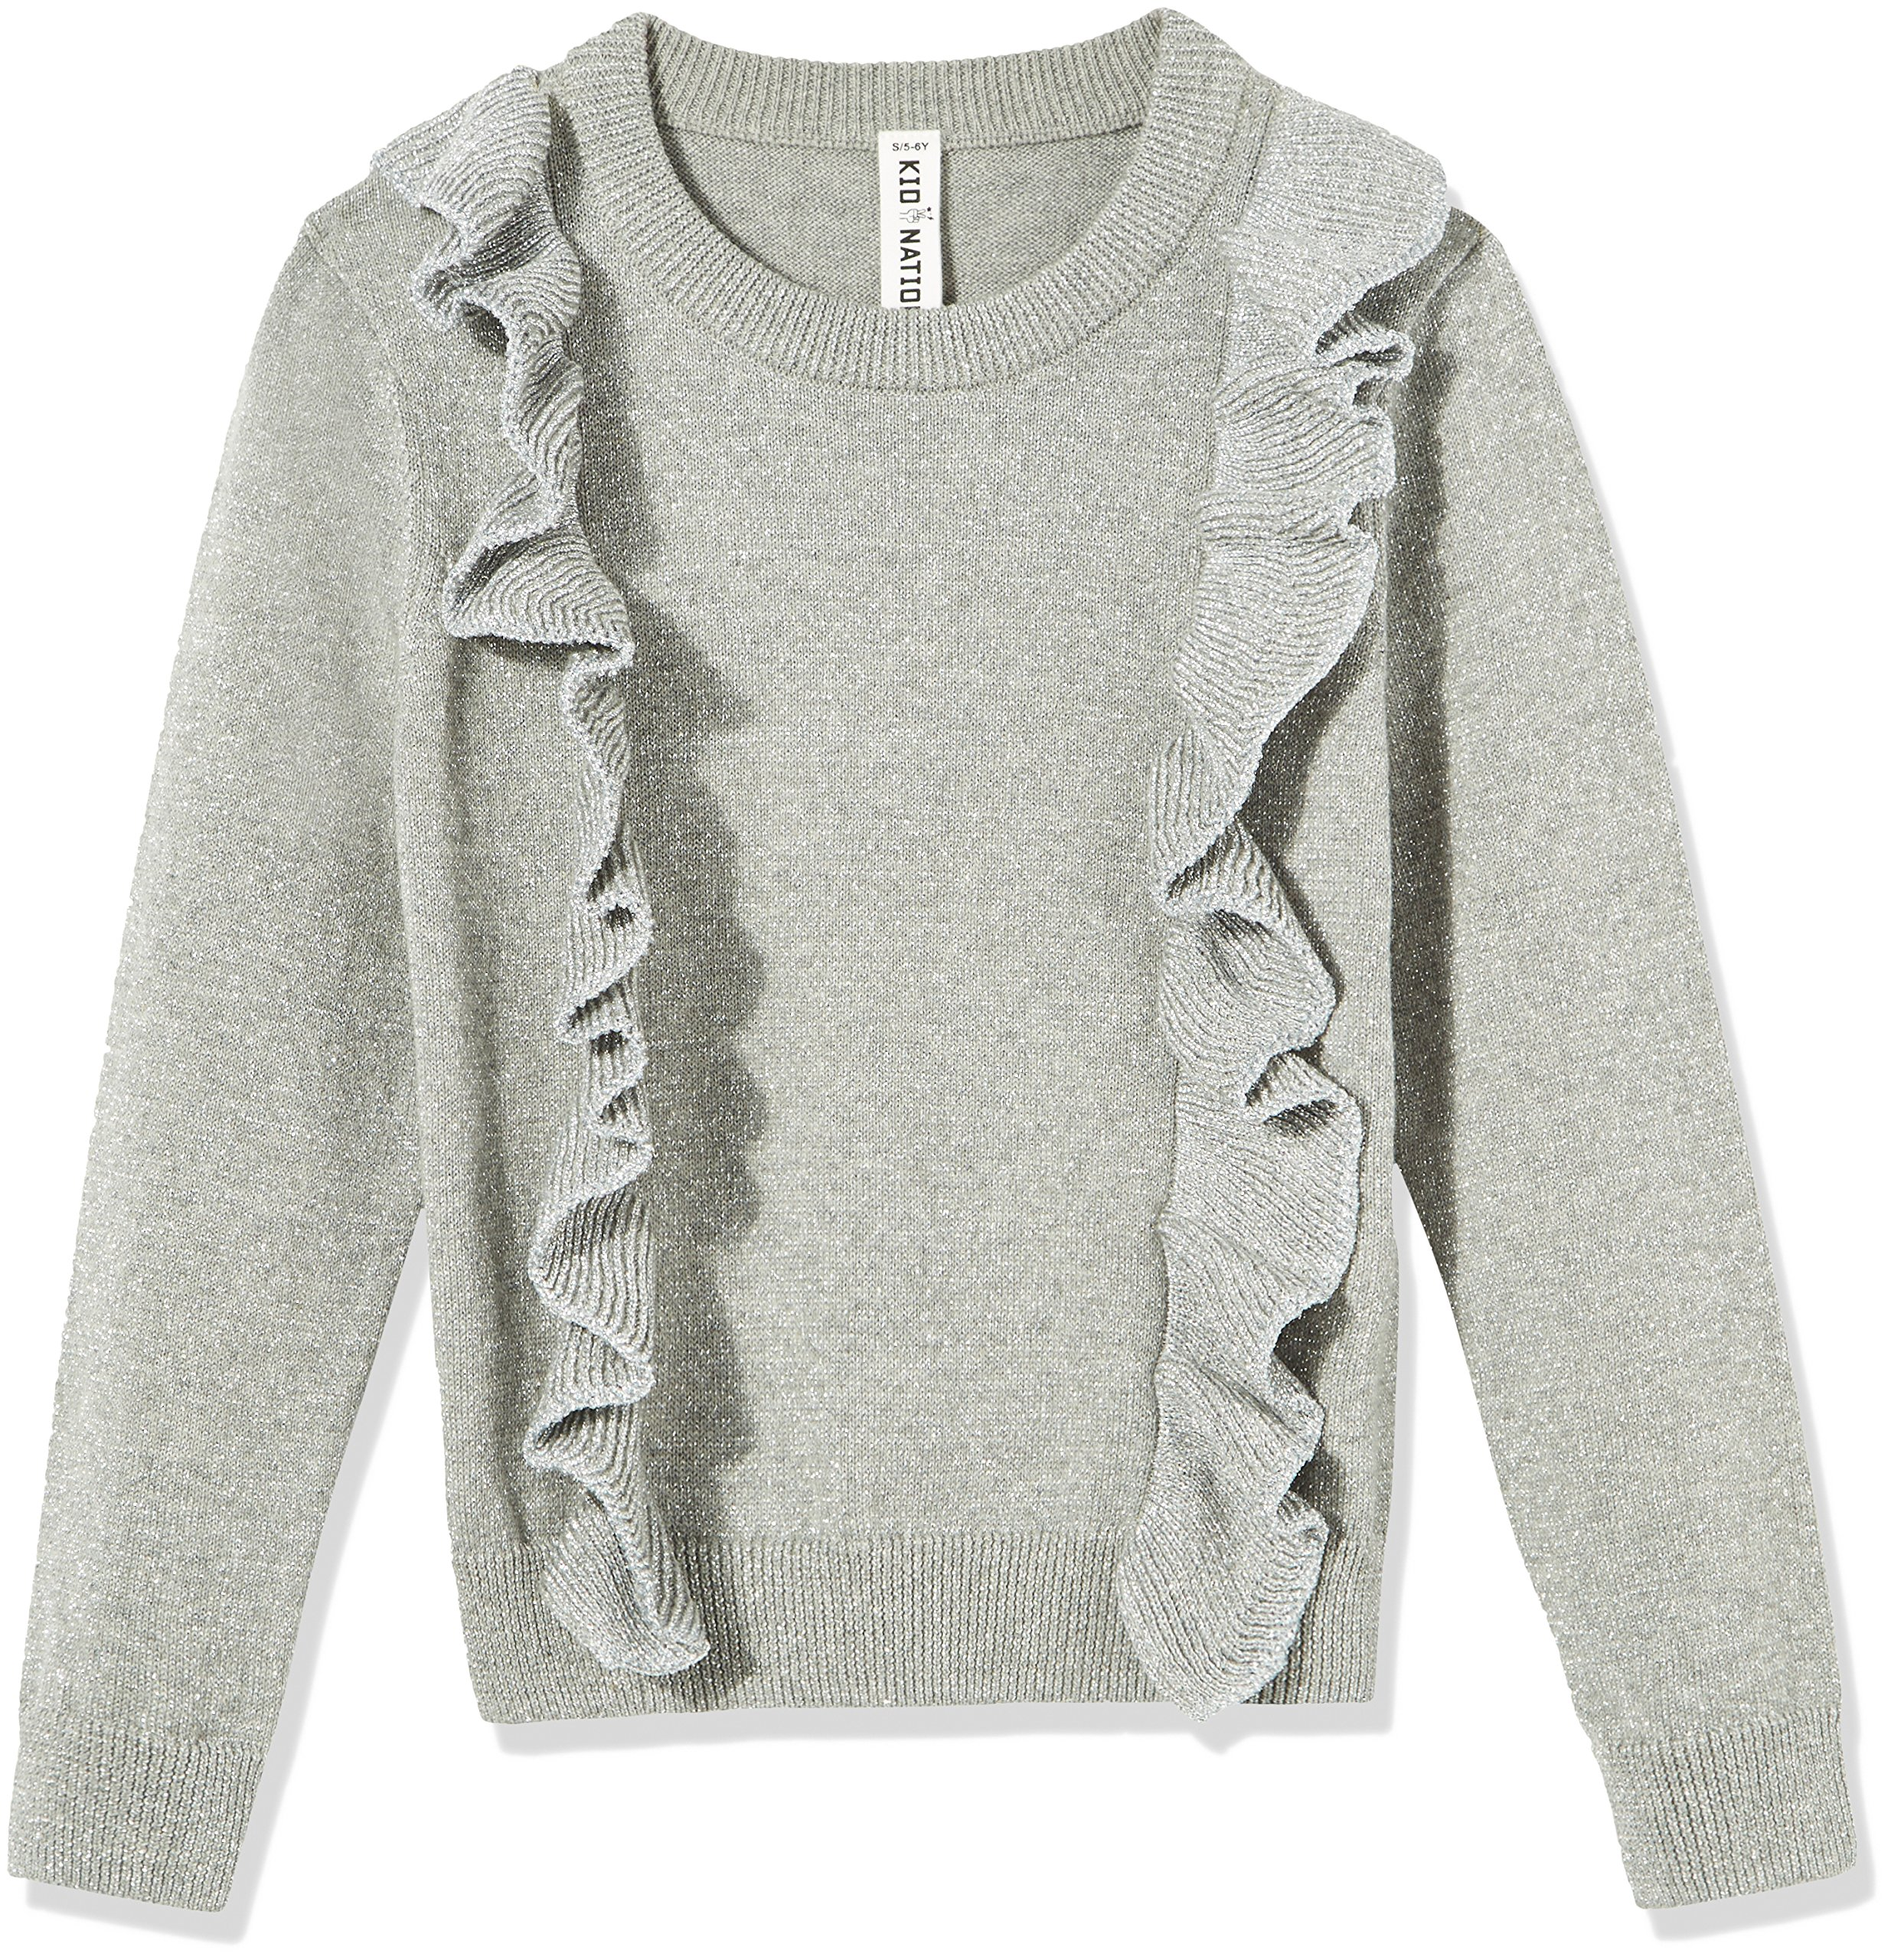 Kid Nation Girls' Long Sleeve Ruffles Pullover Sweater Size XS Grey